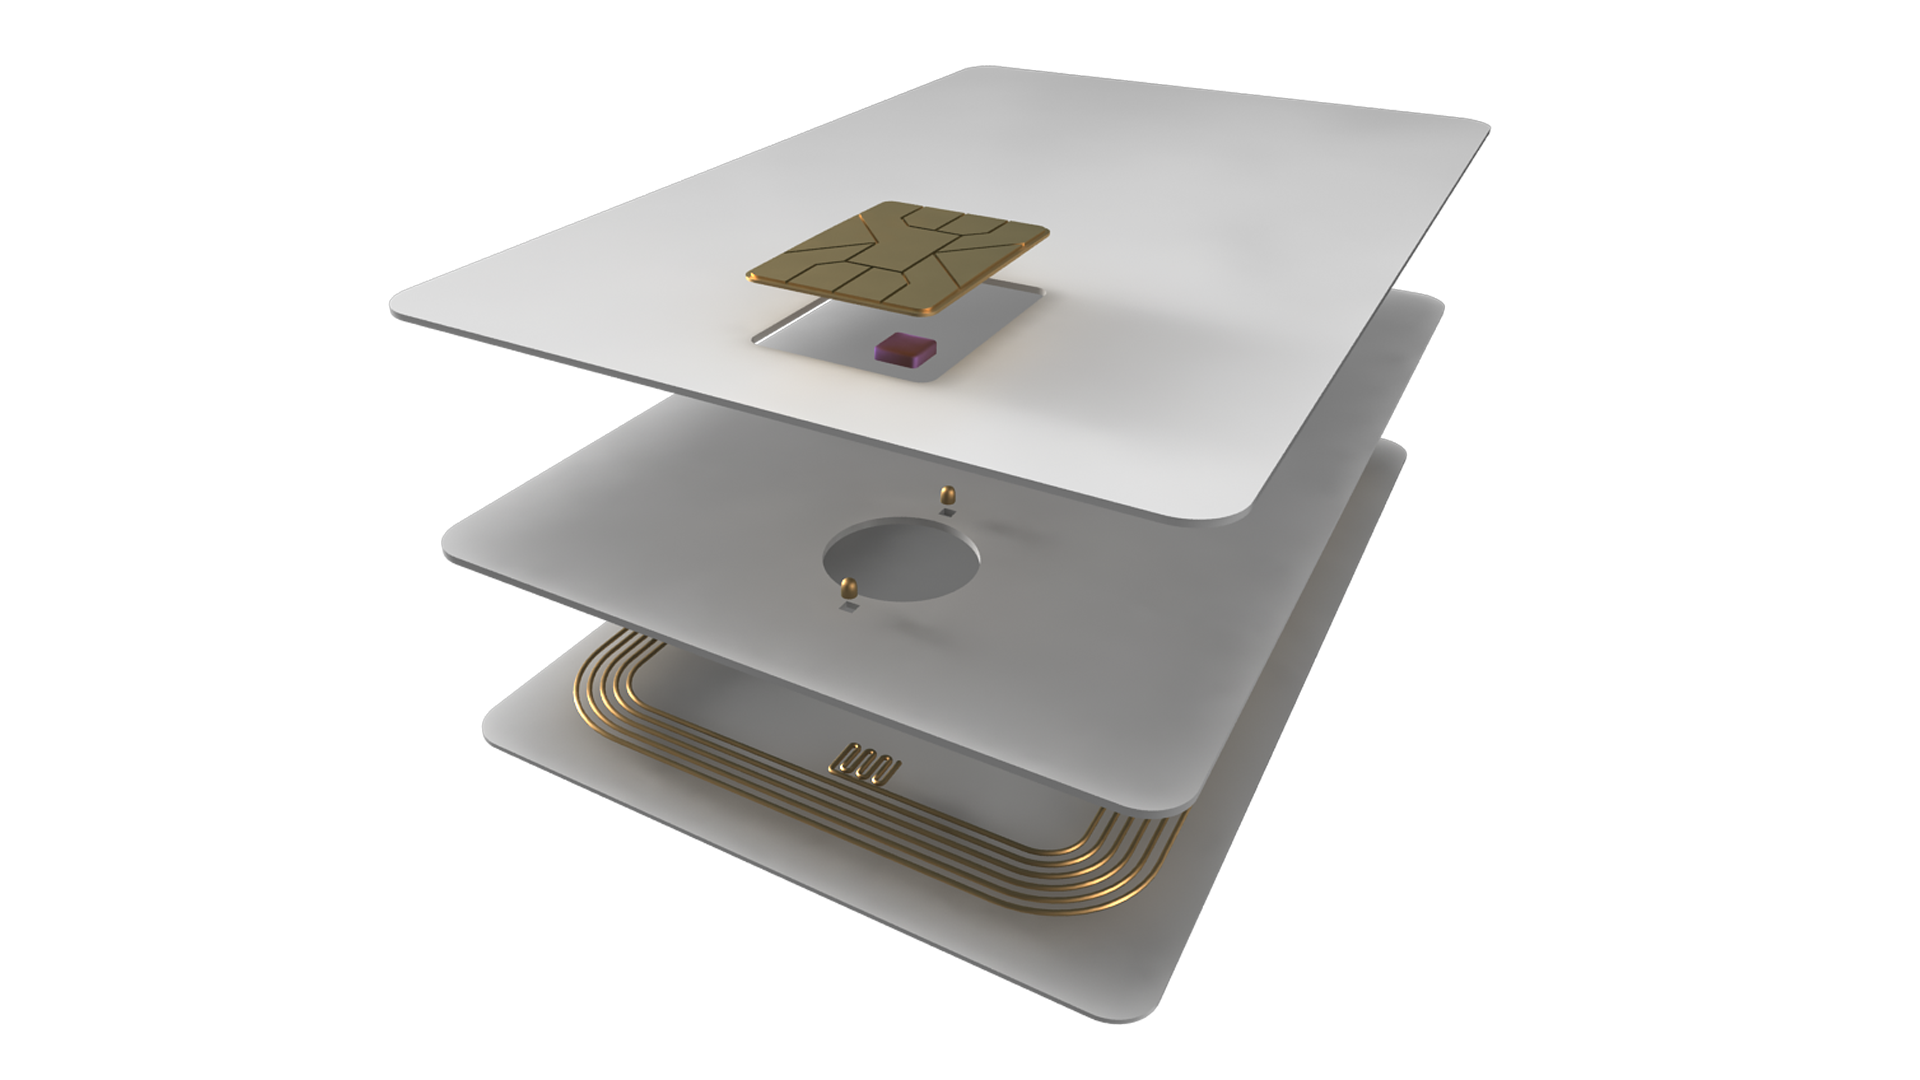 Dual Interface Card – PrintPlast   World's Most Sustainable RFID Cards